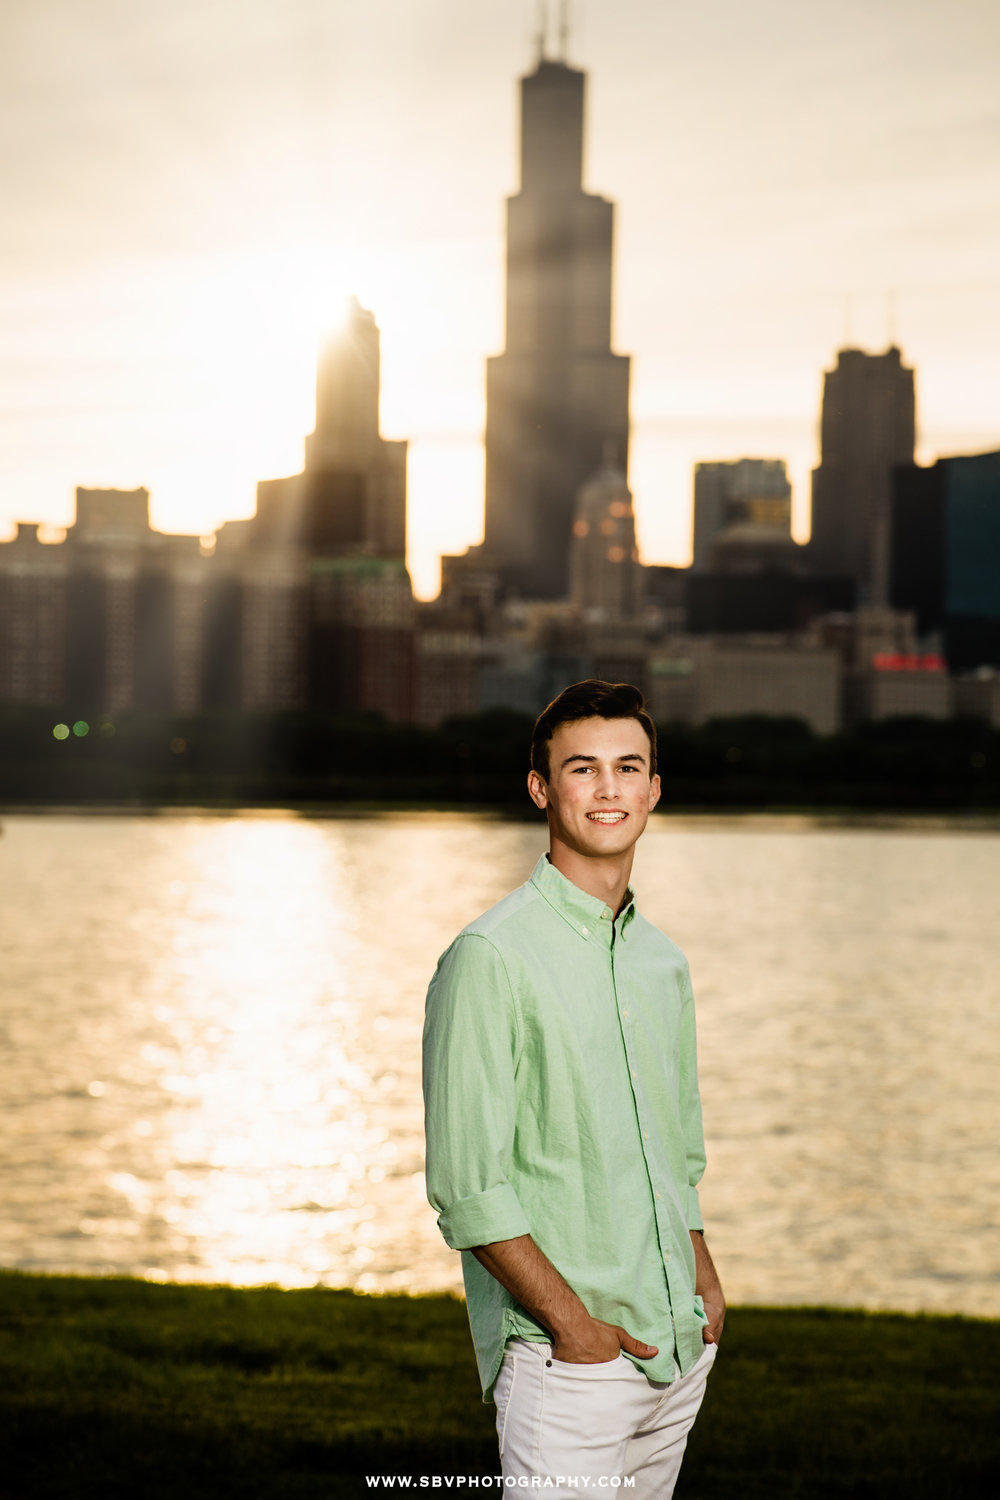 Chicago senior picture sunset photo.